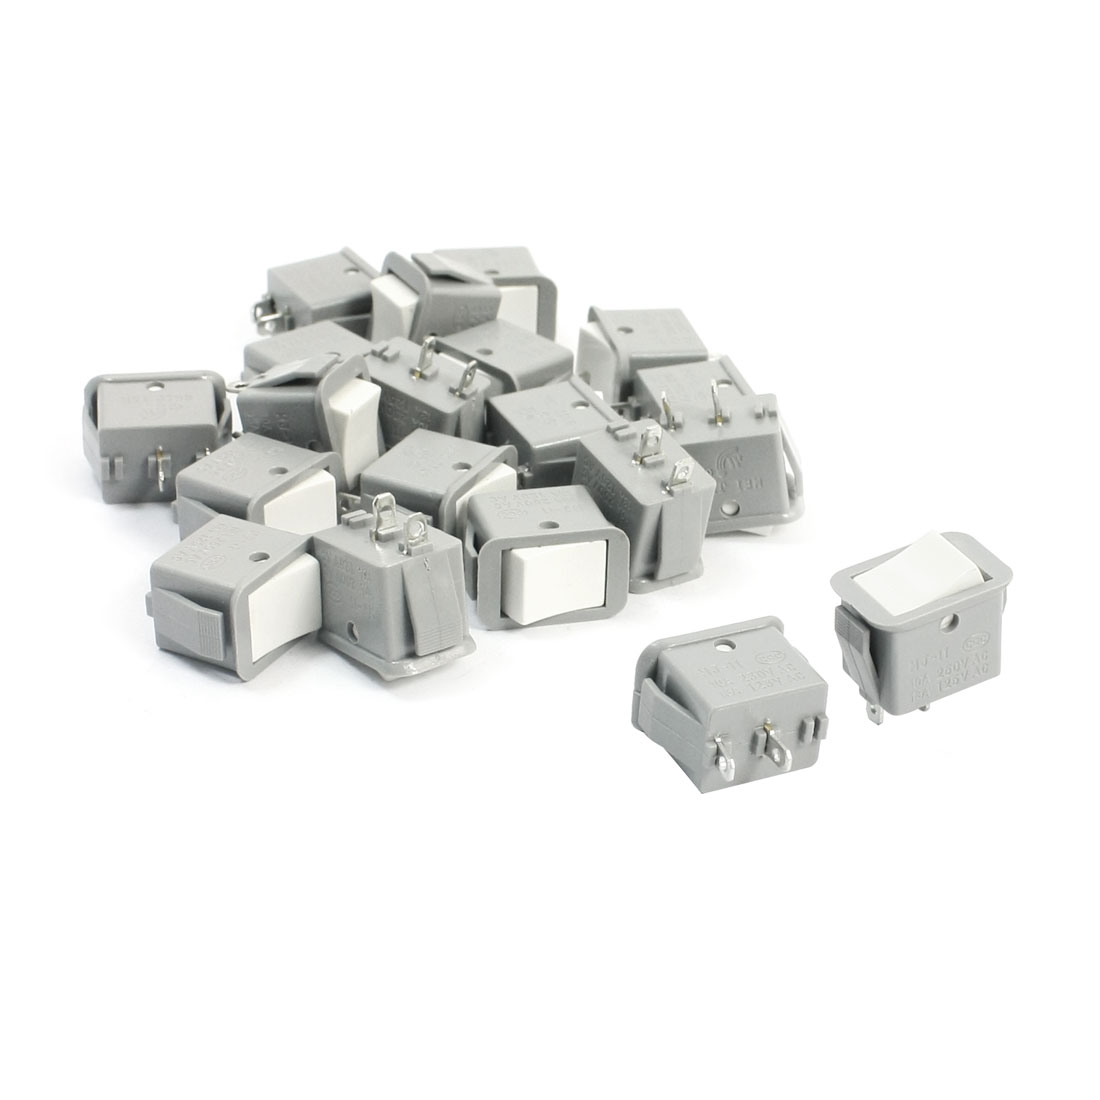 20Pcs AC250V/10A 125V/13A Latching SPST On/Off Rocker Switch Gray